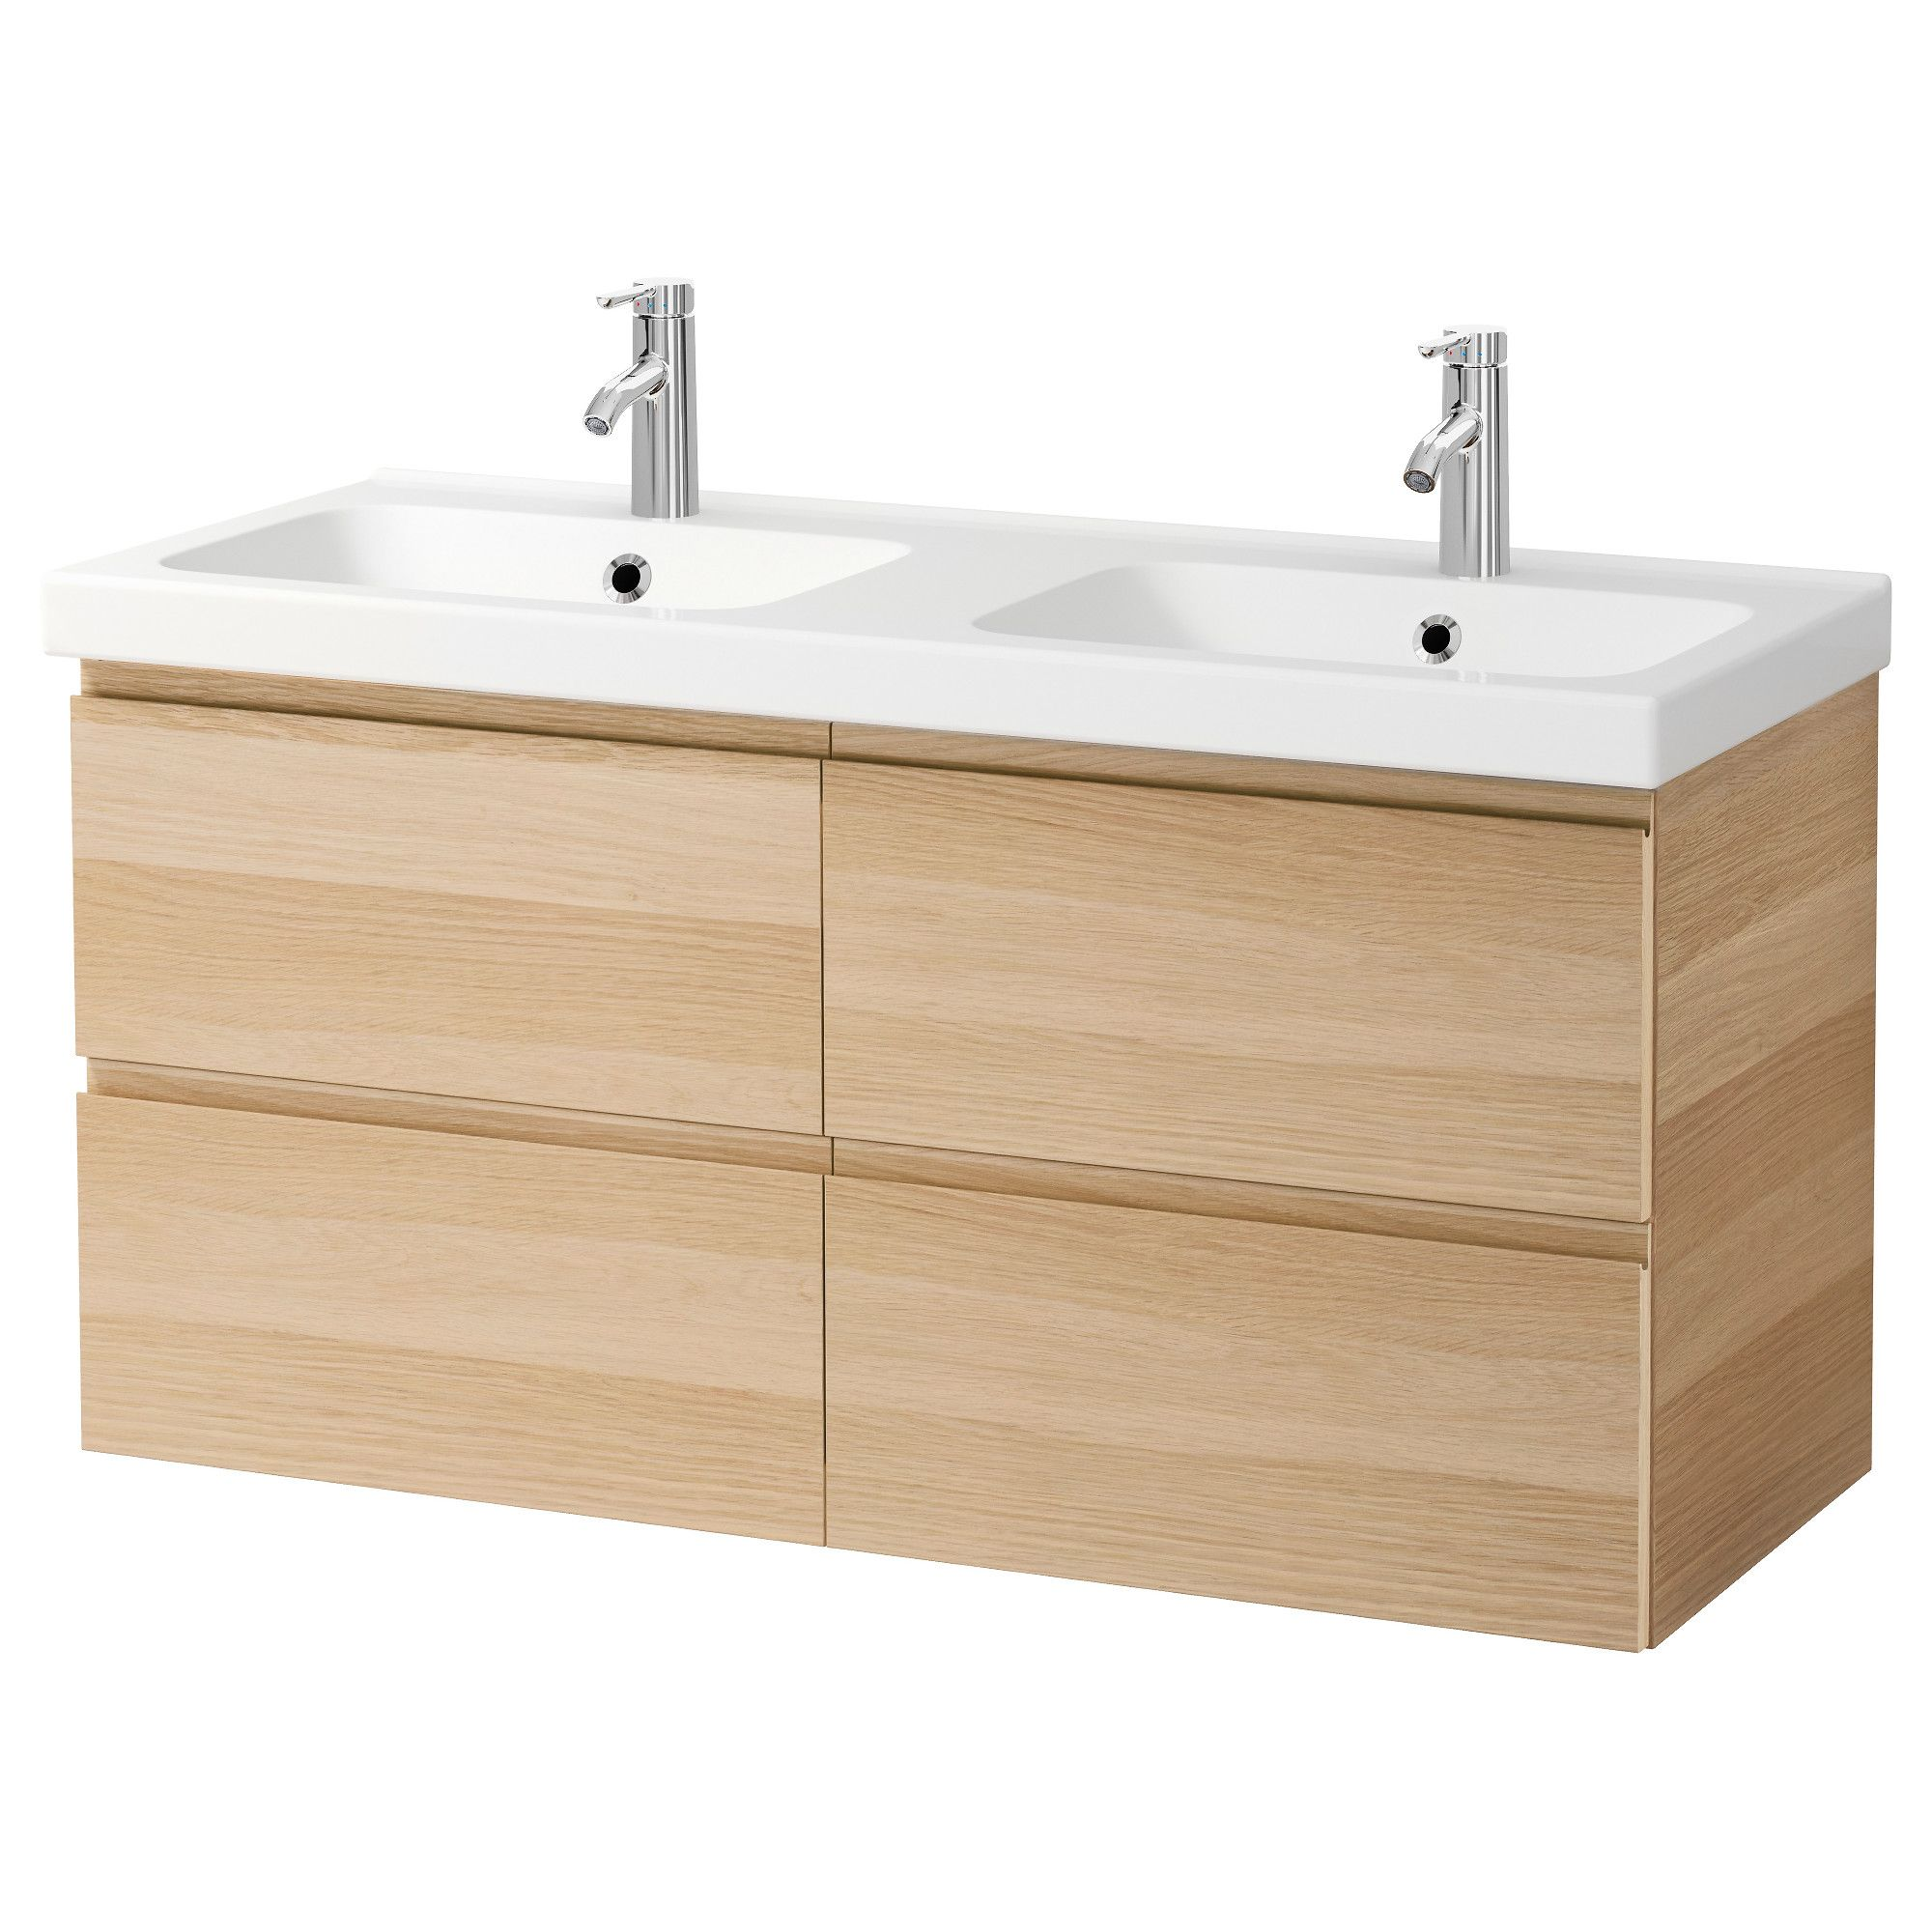 IKEA - GODMORGON / ODENSVIK Sink cabinet with 4 drawers white ... Ikea Bathroom Sink Cabinets on